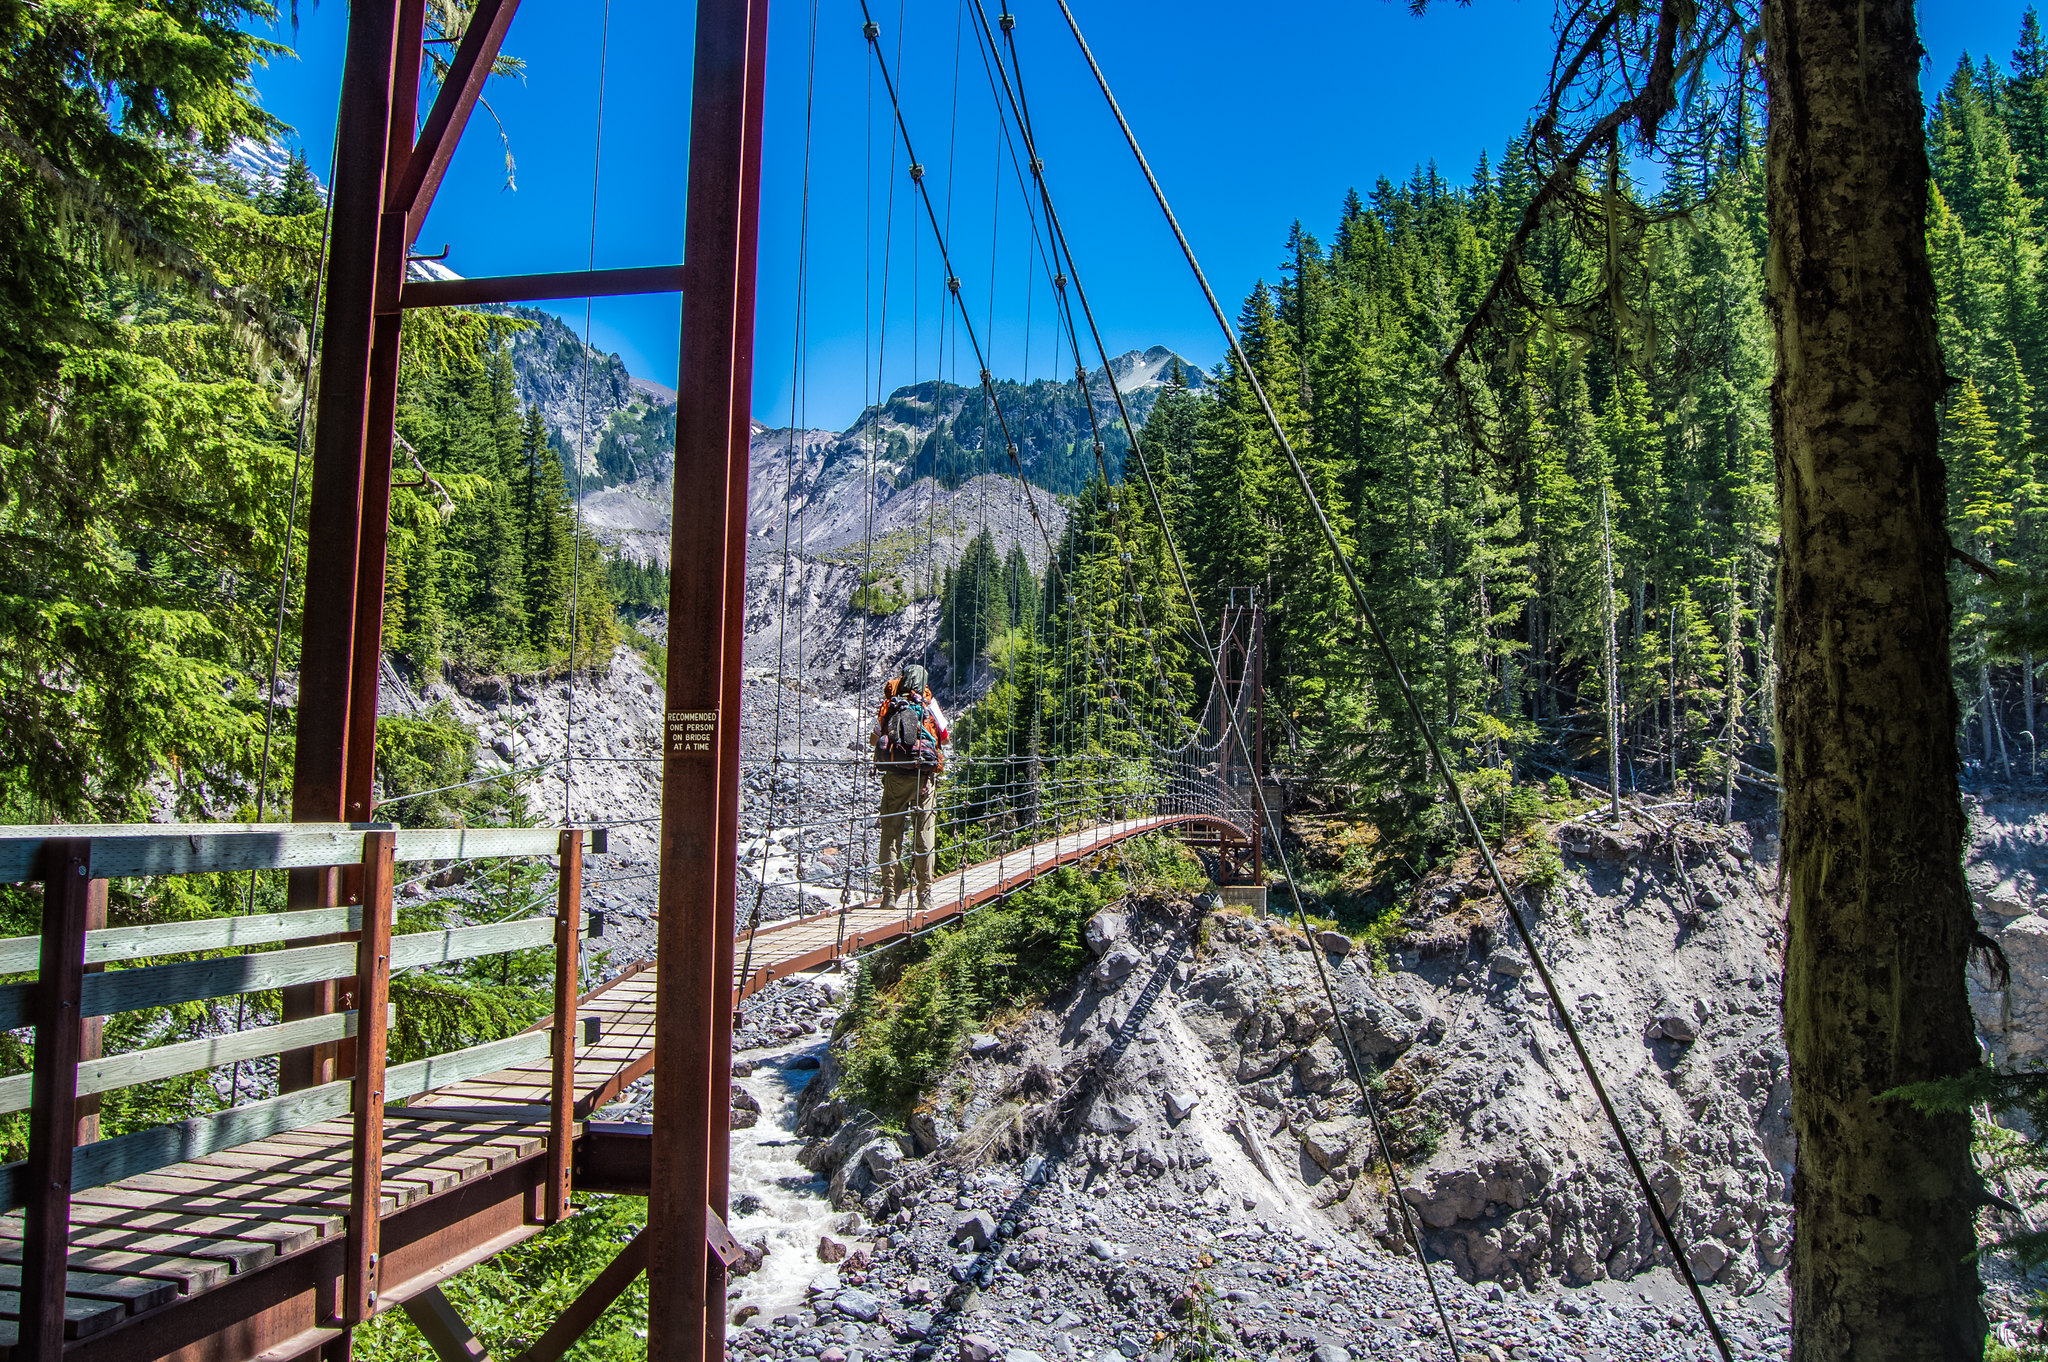 Wonderland Trail adventurer crossing the Tahoma Creek Suspension Bridge - Austin Miller